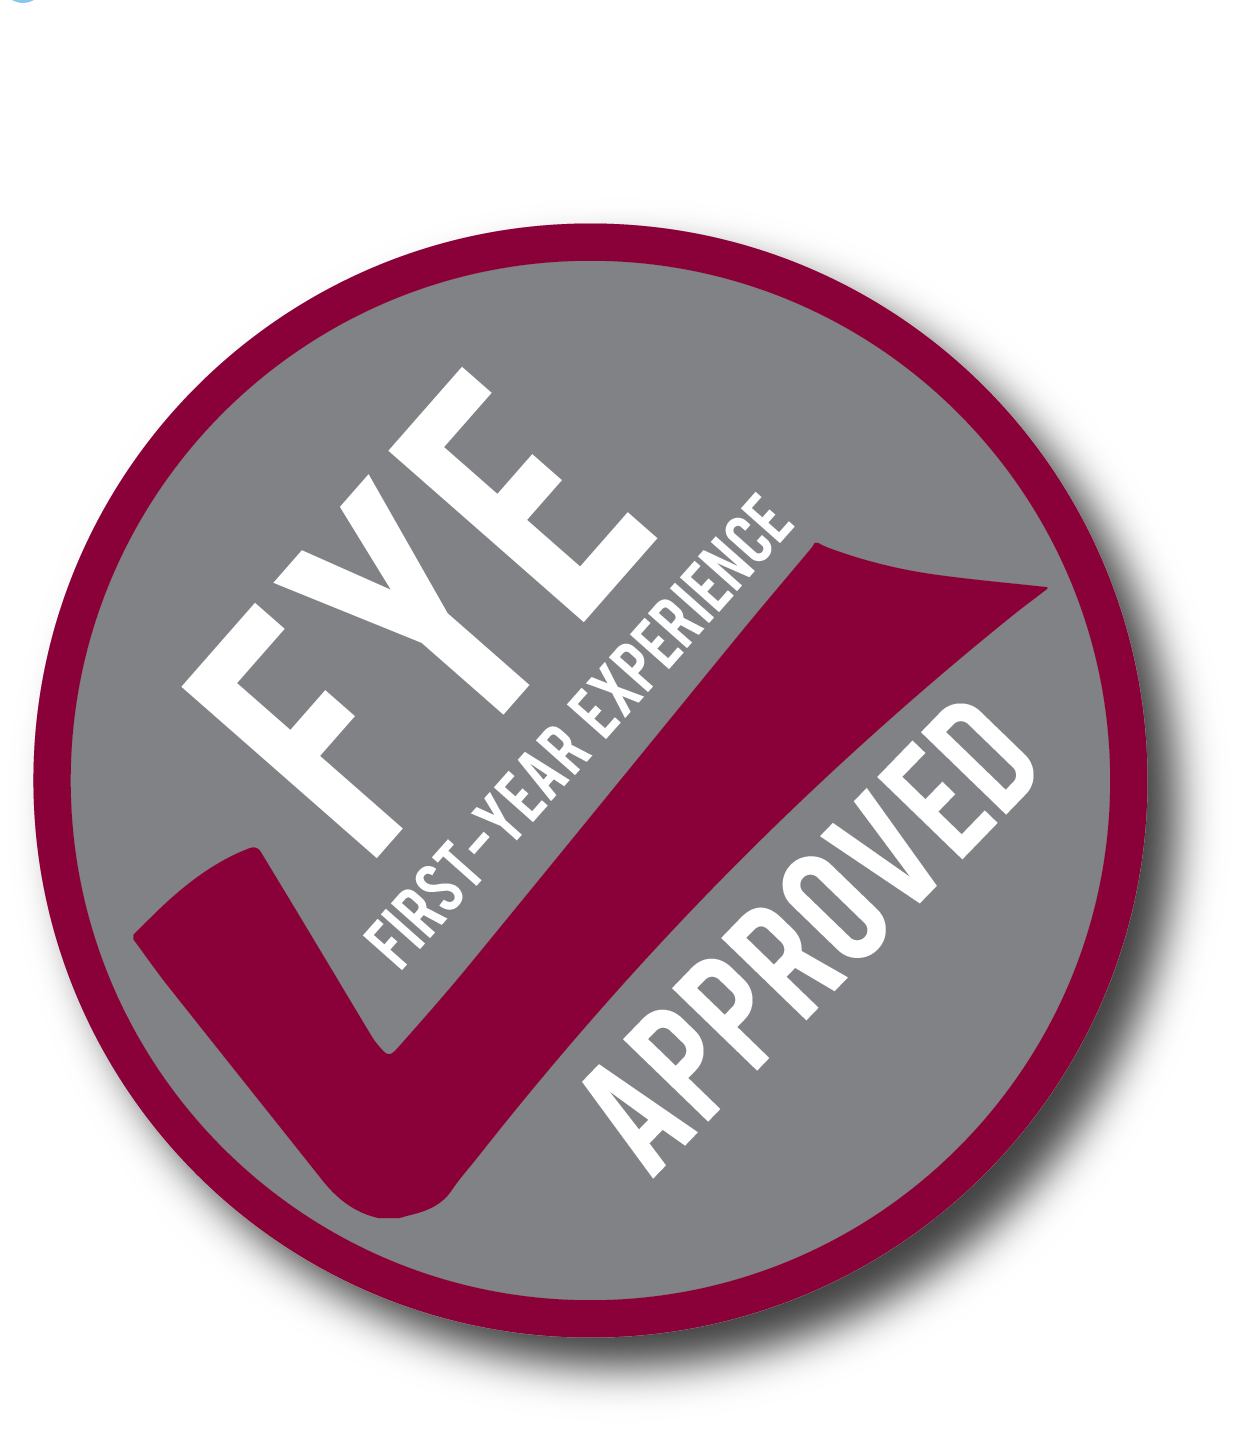 FYE Approved Logo will be found on all FYE event posters.